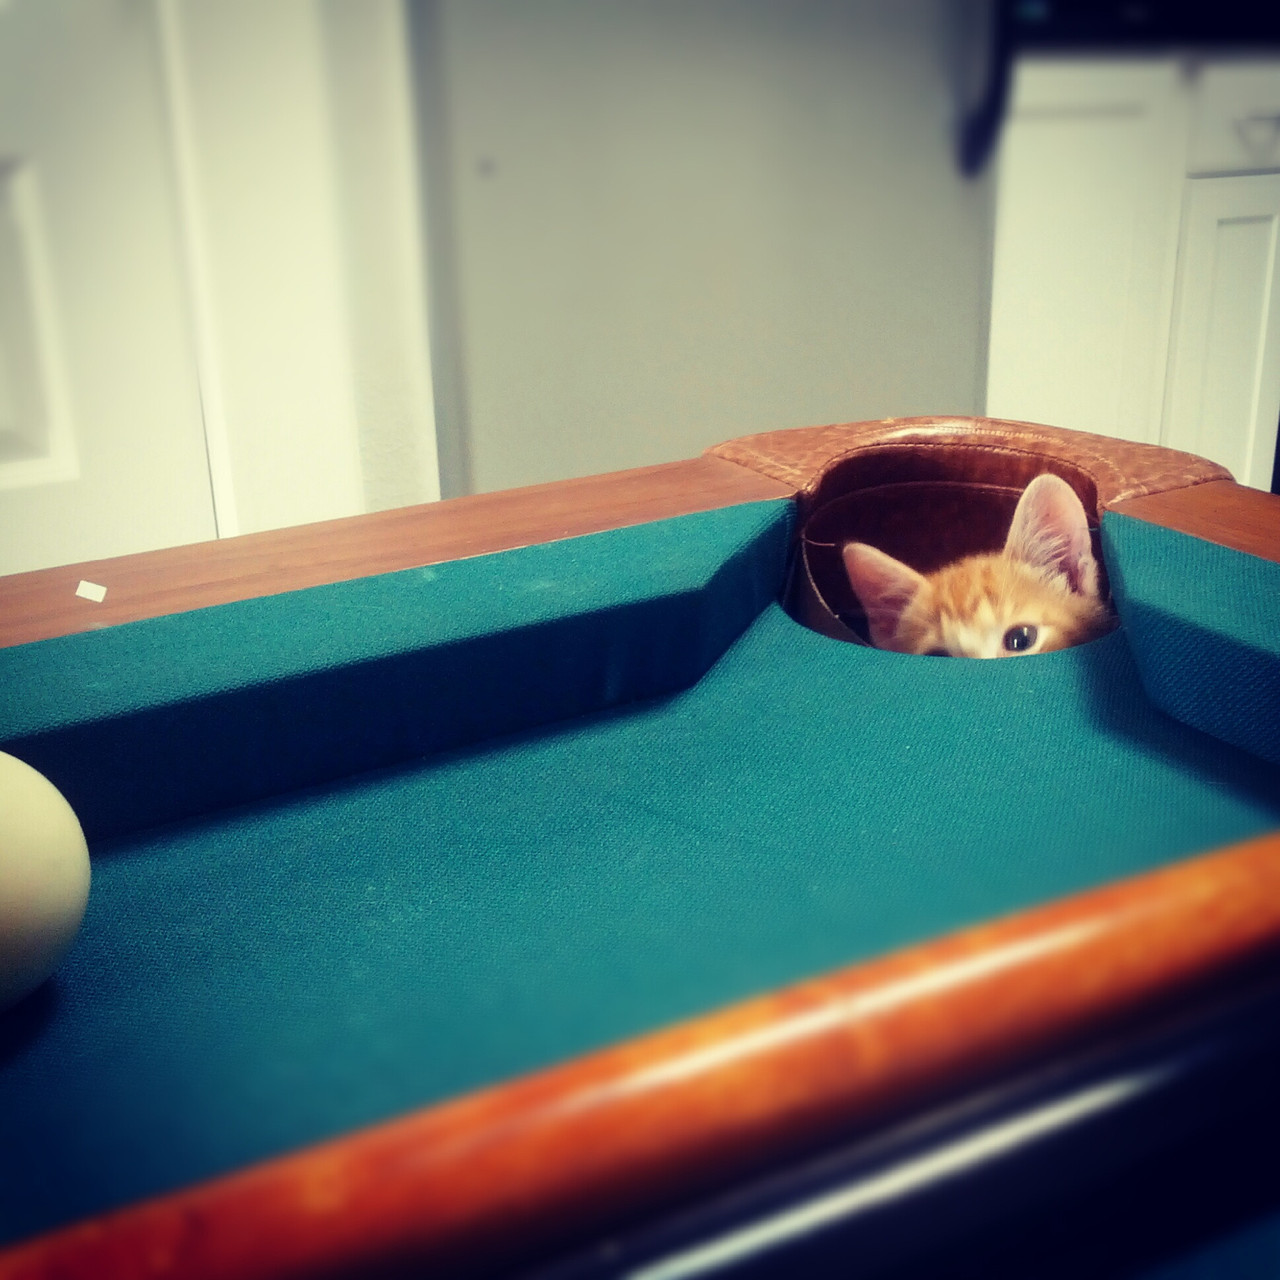 Camper Kitten is in a very strategic position. Photo via Imgur